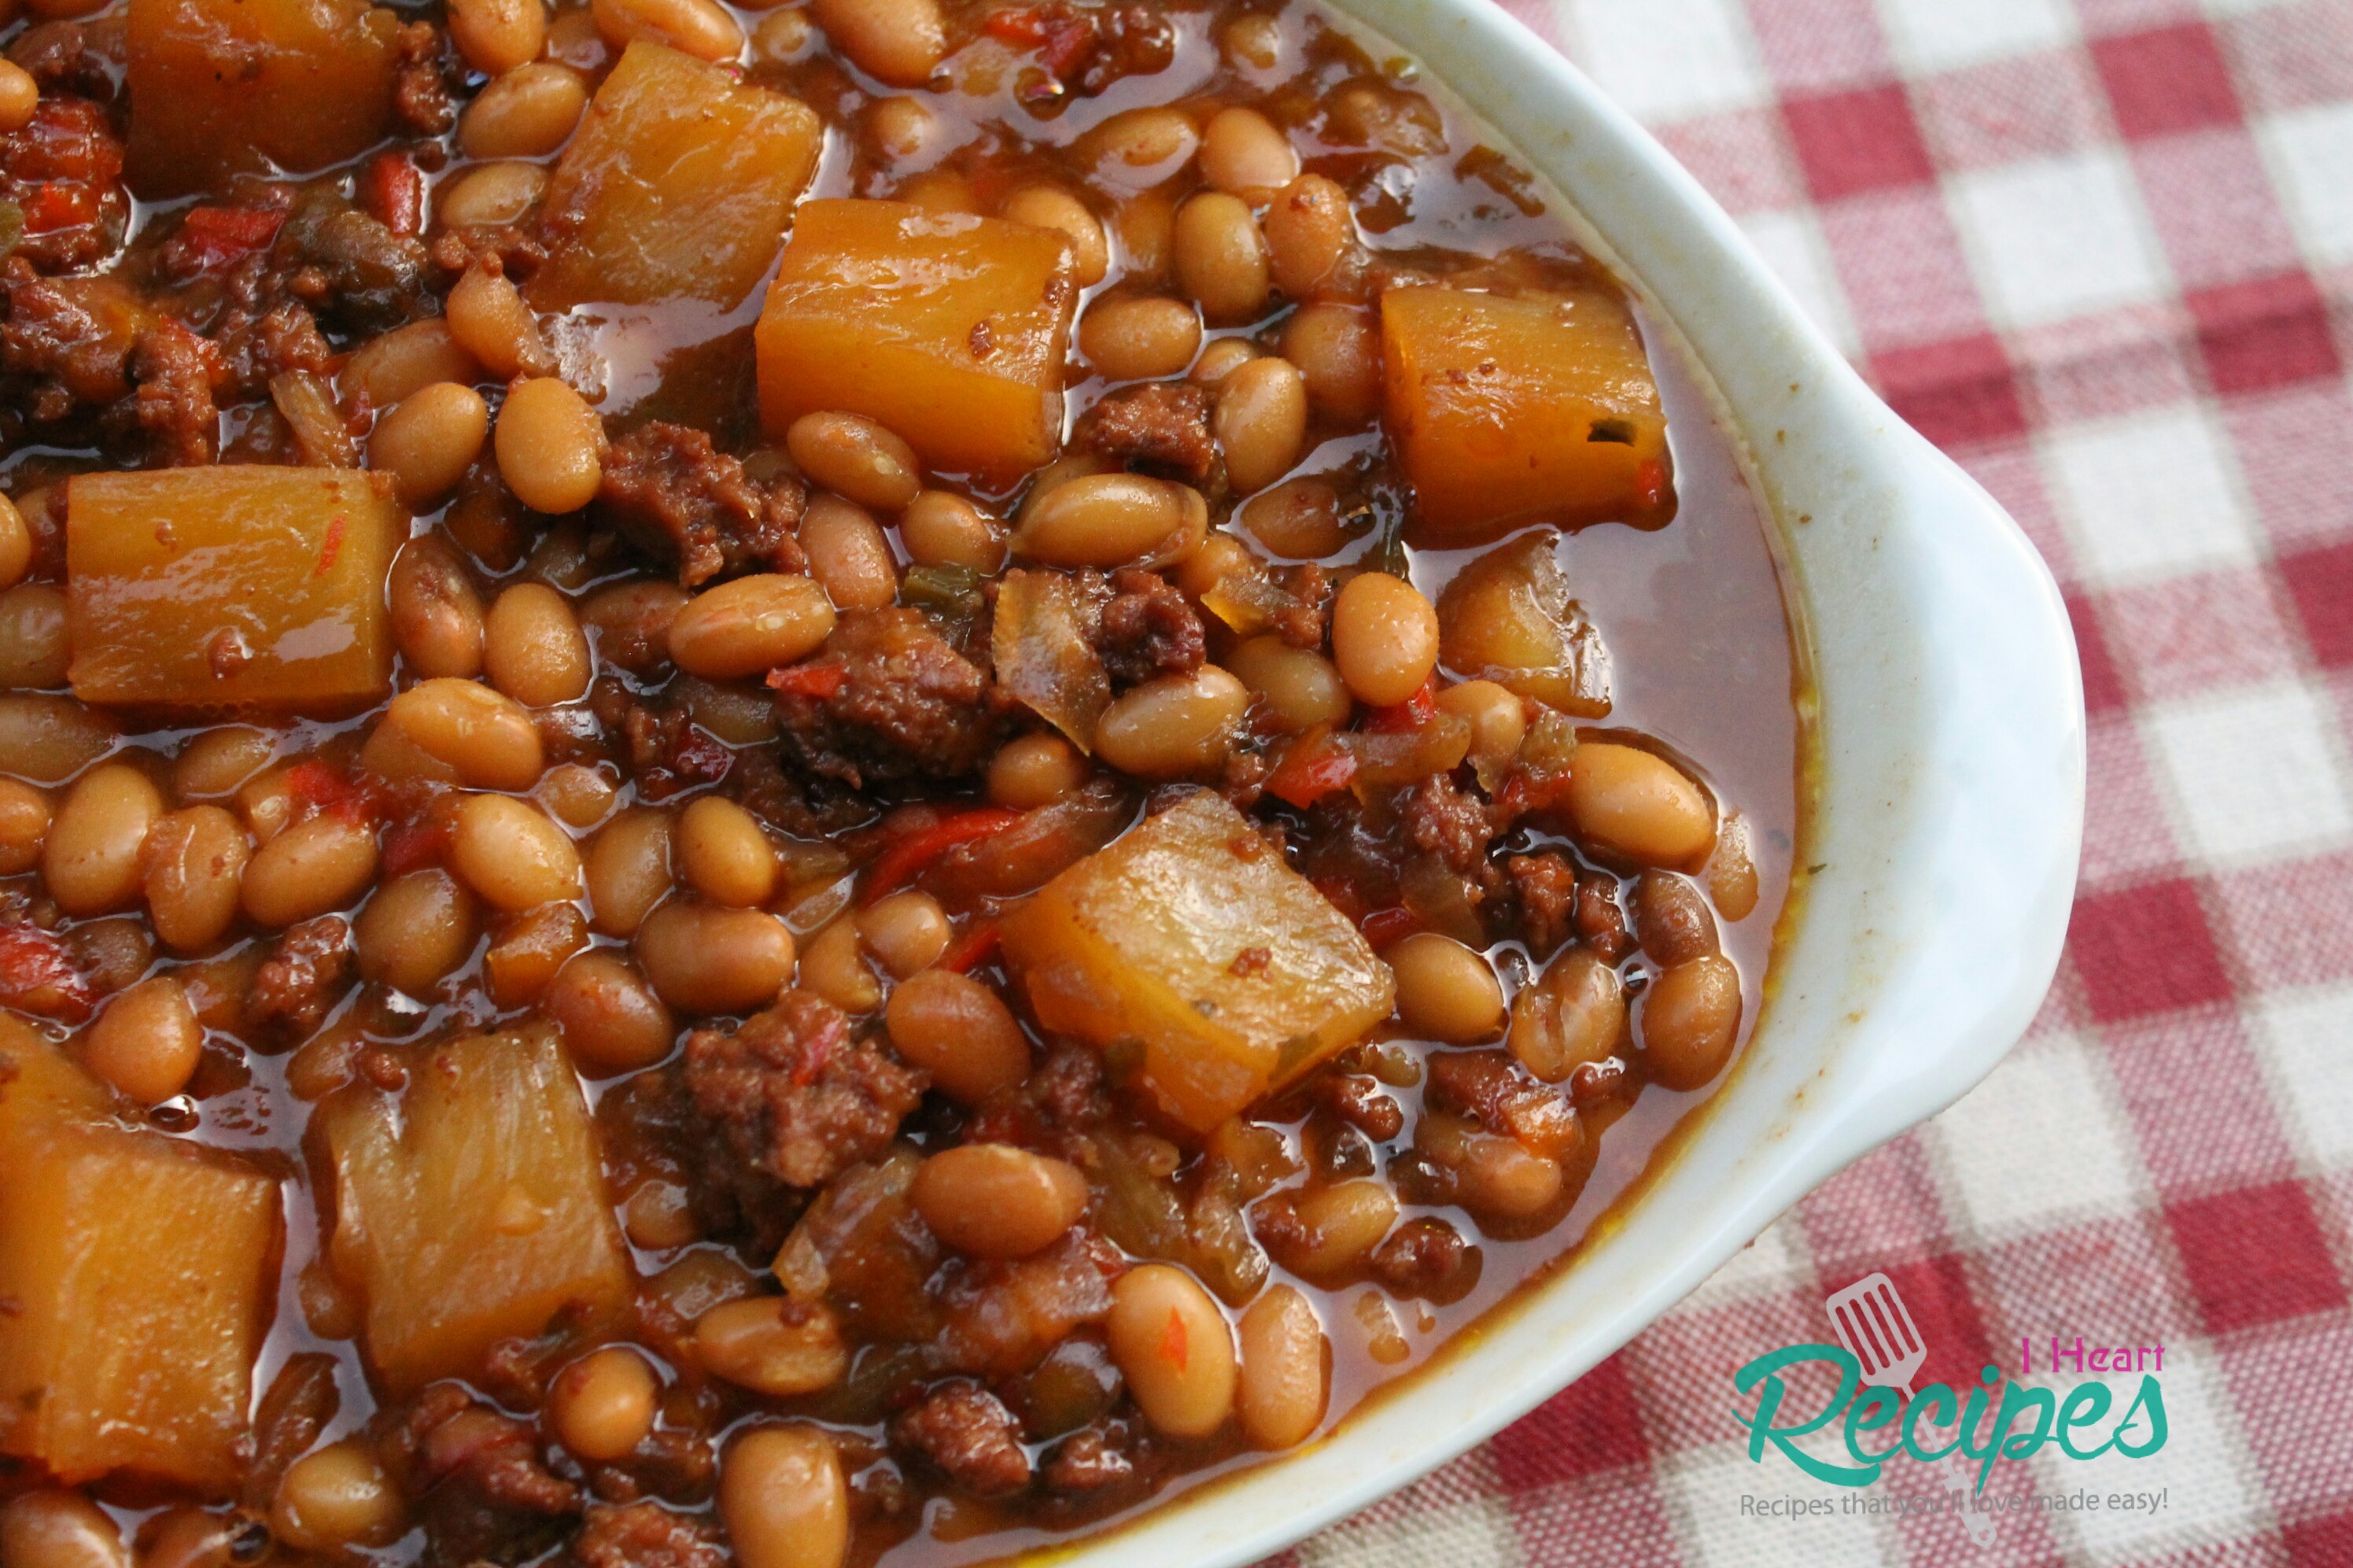 sweet and savory baked beans in a brown sugar sauce with pineapple chunks and bacon